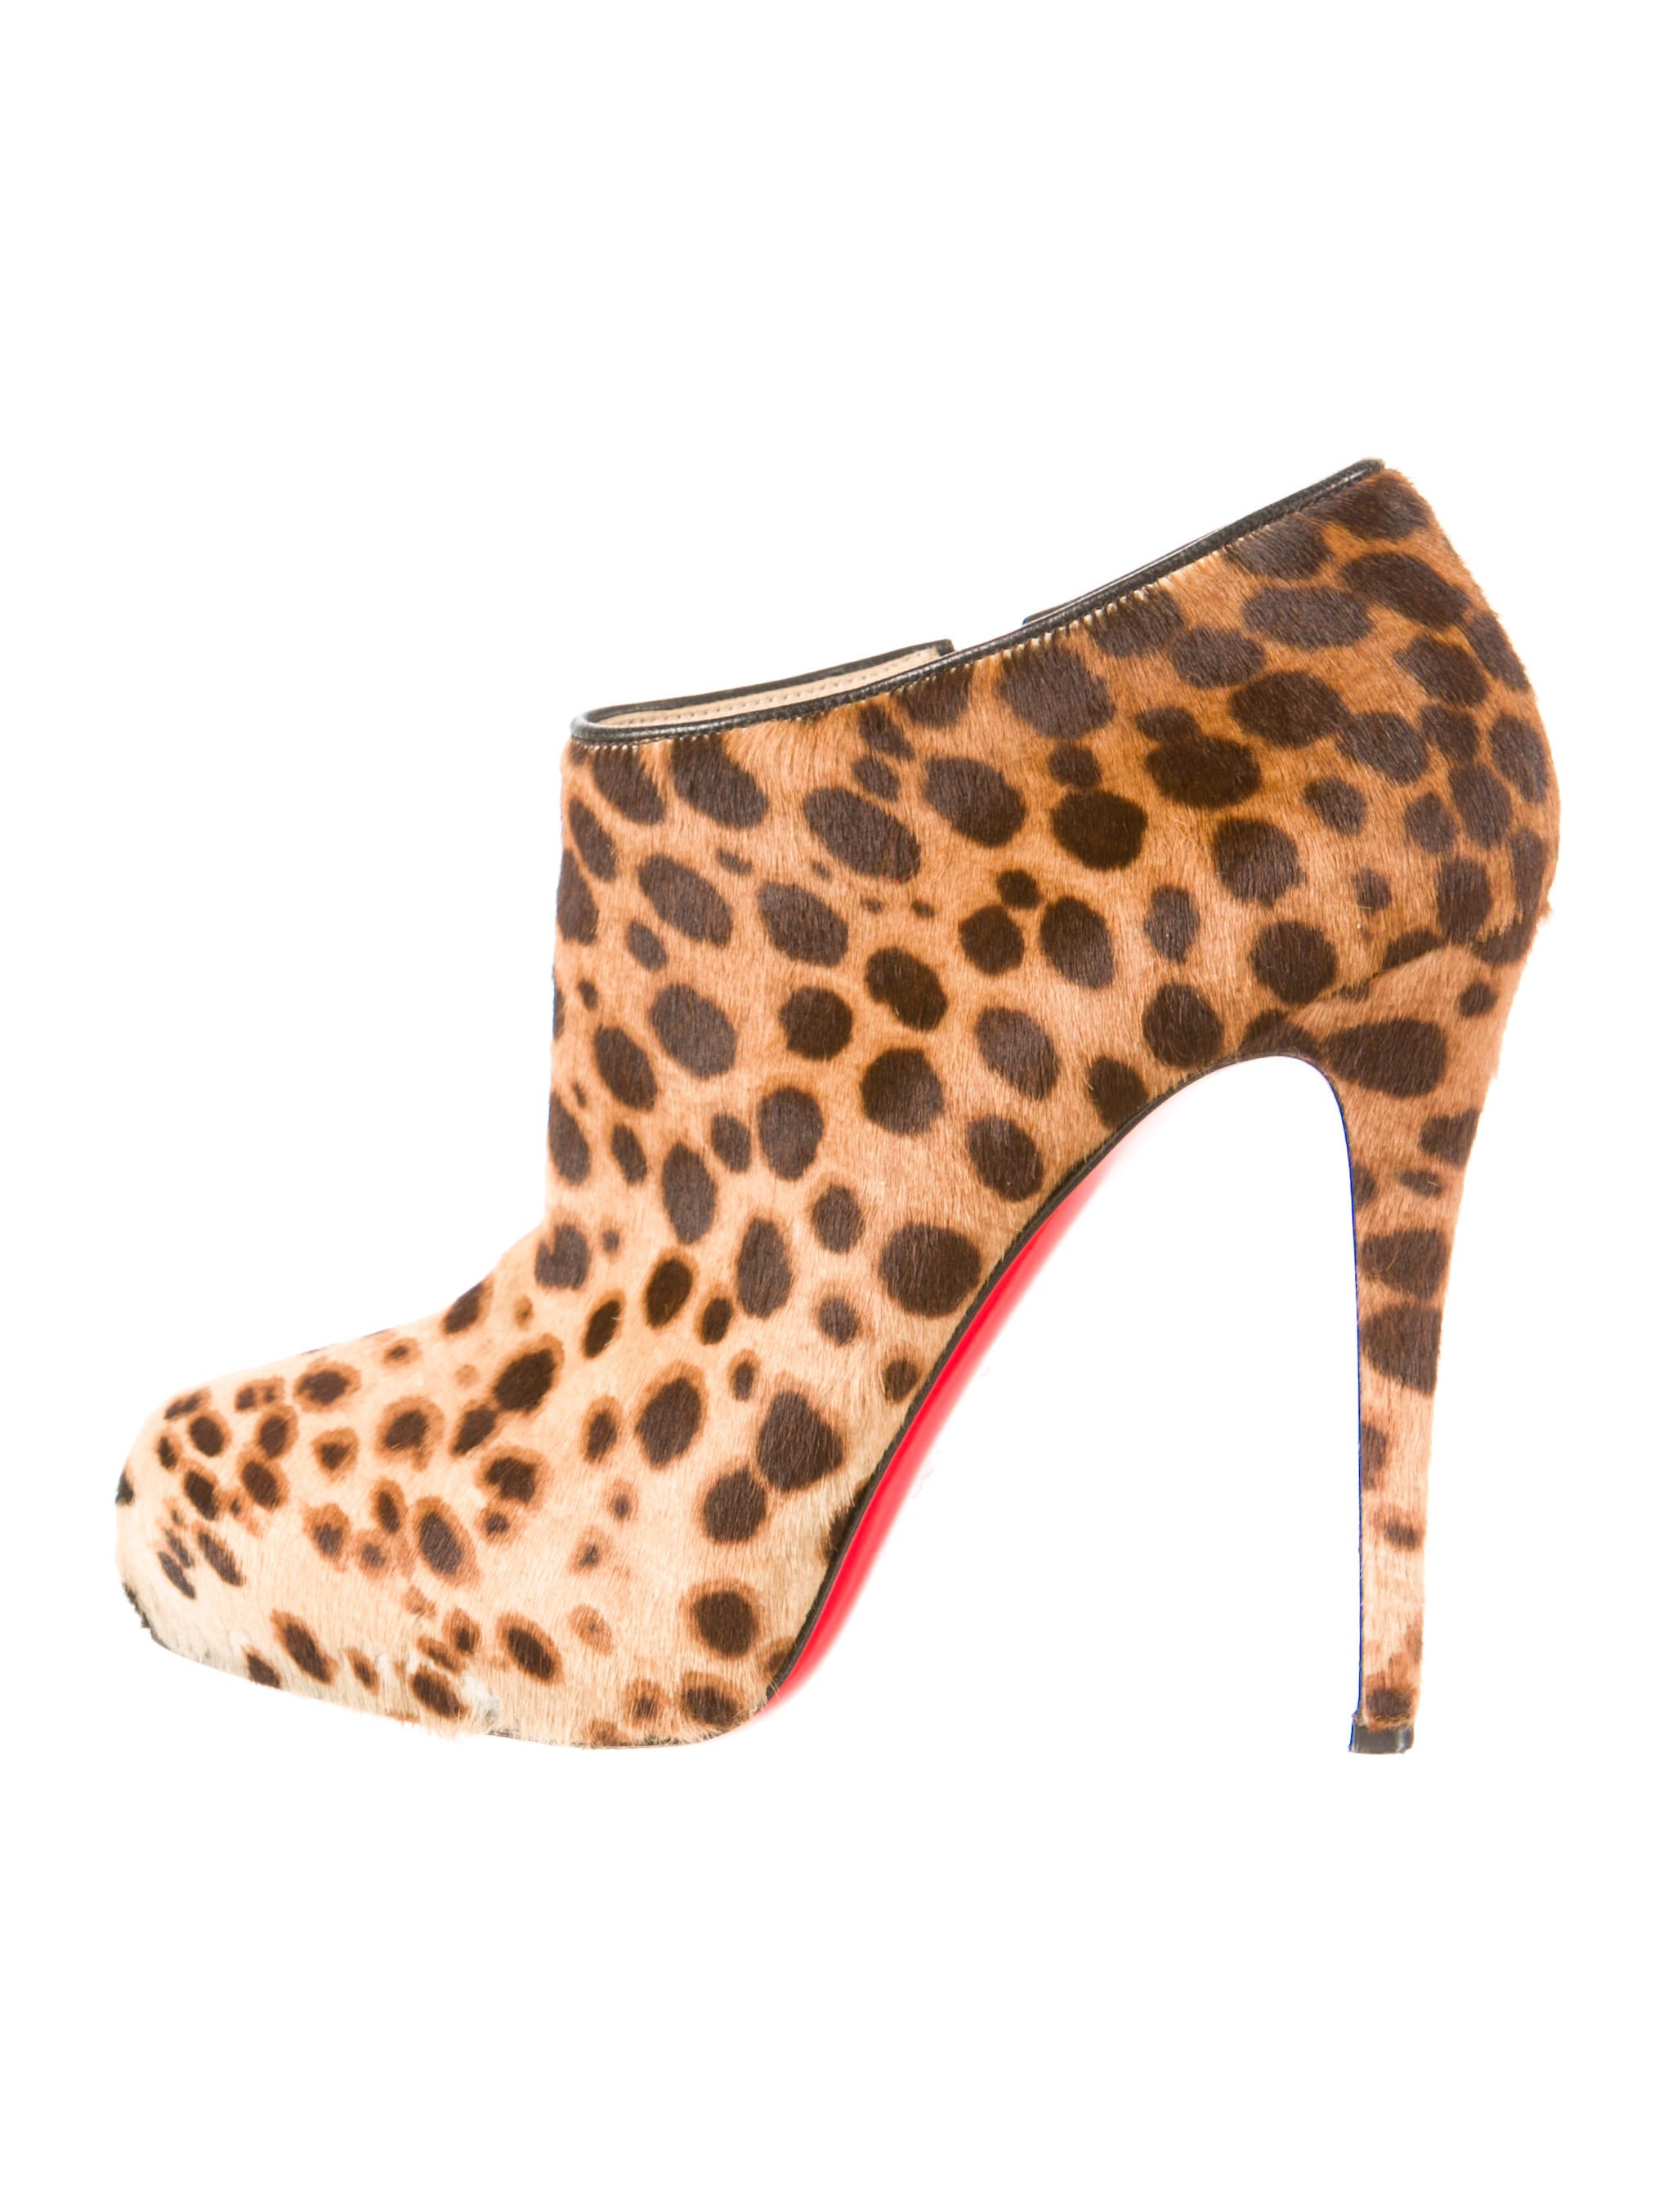 louboutin shoes price - christian louboutin pointed-toe pumps Tan and brown ponyhair ...